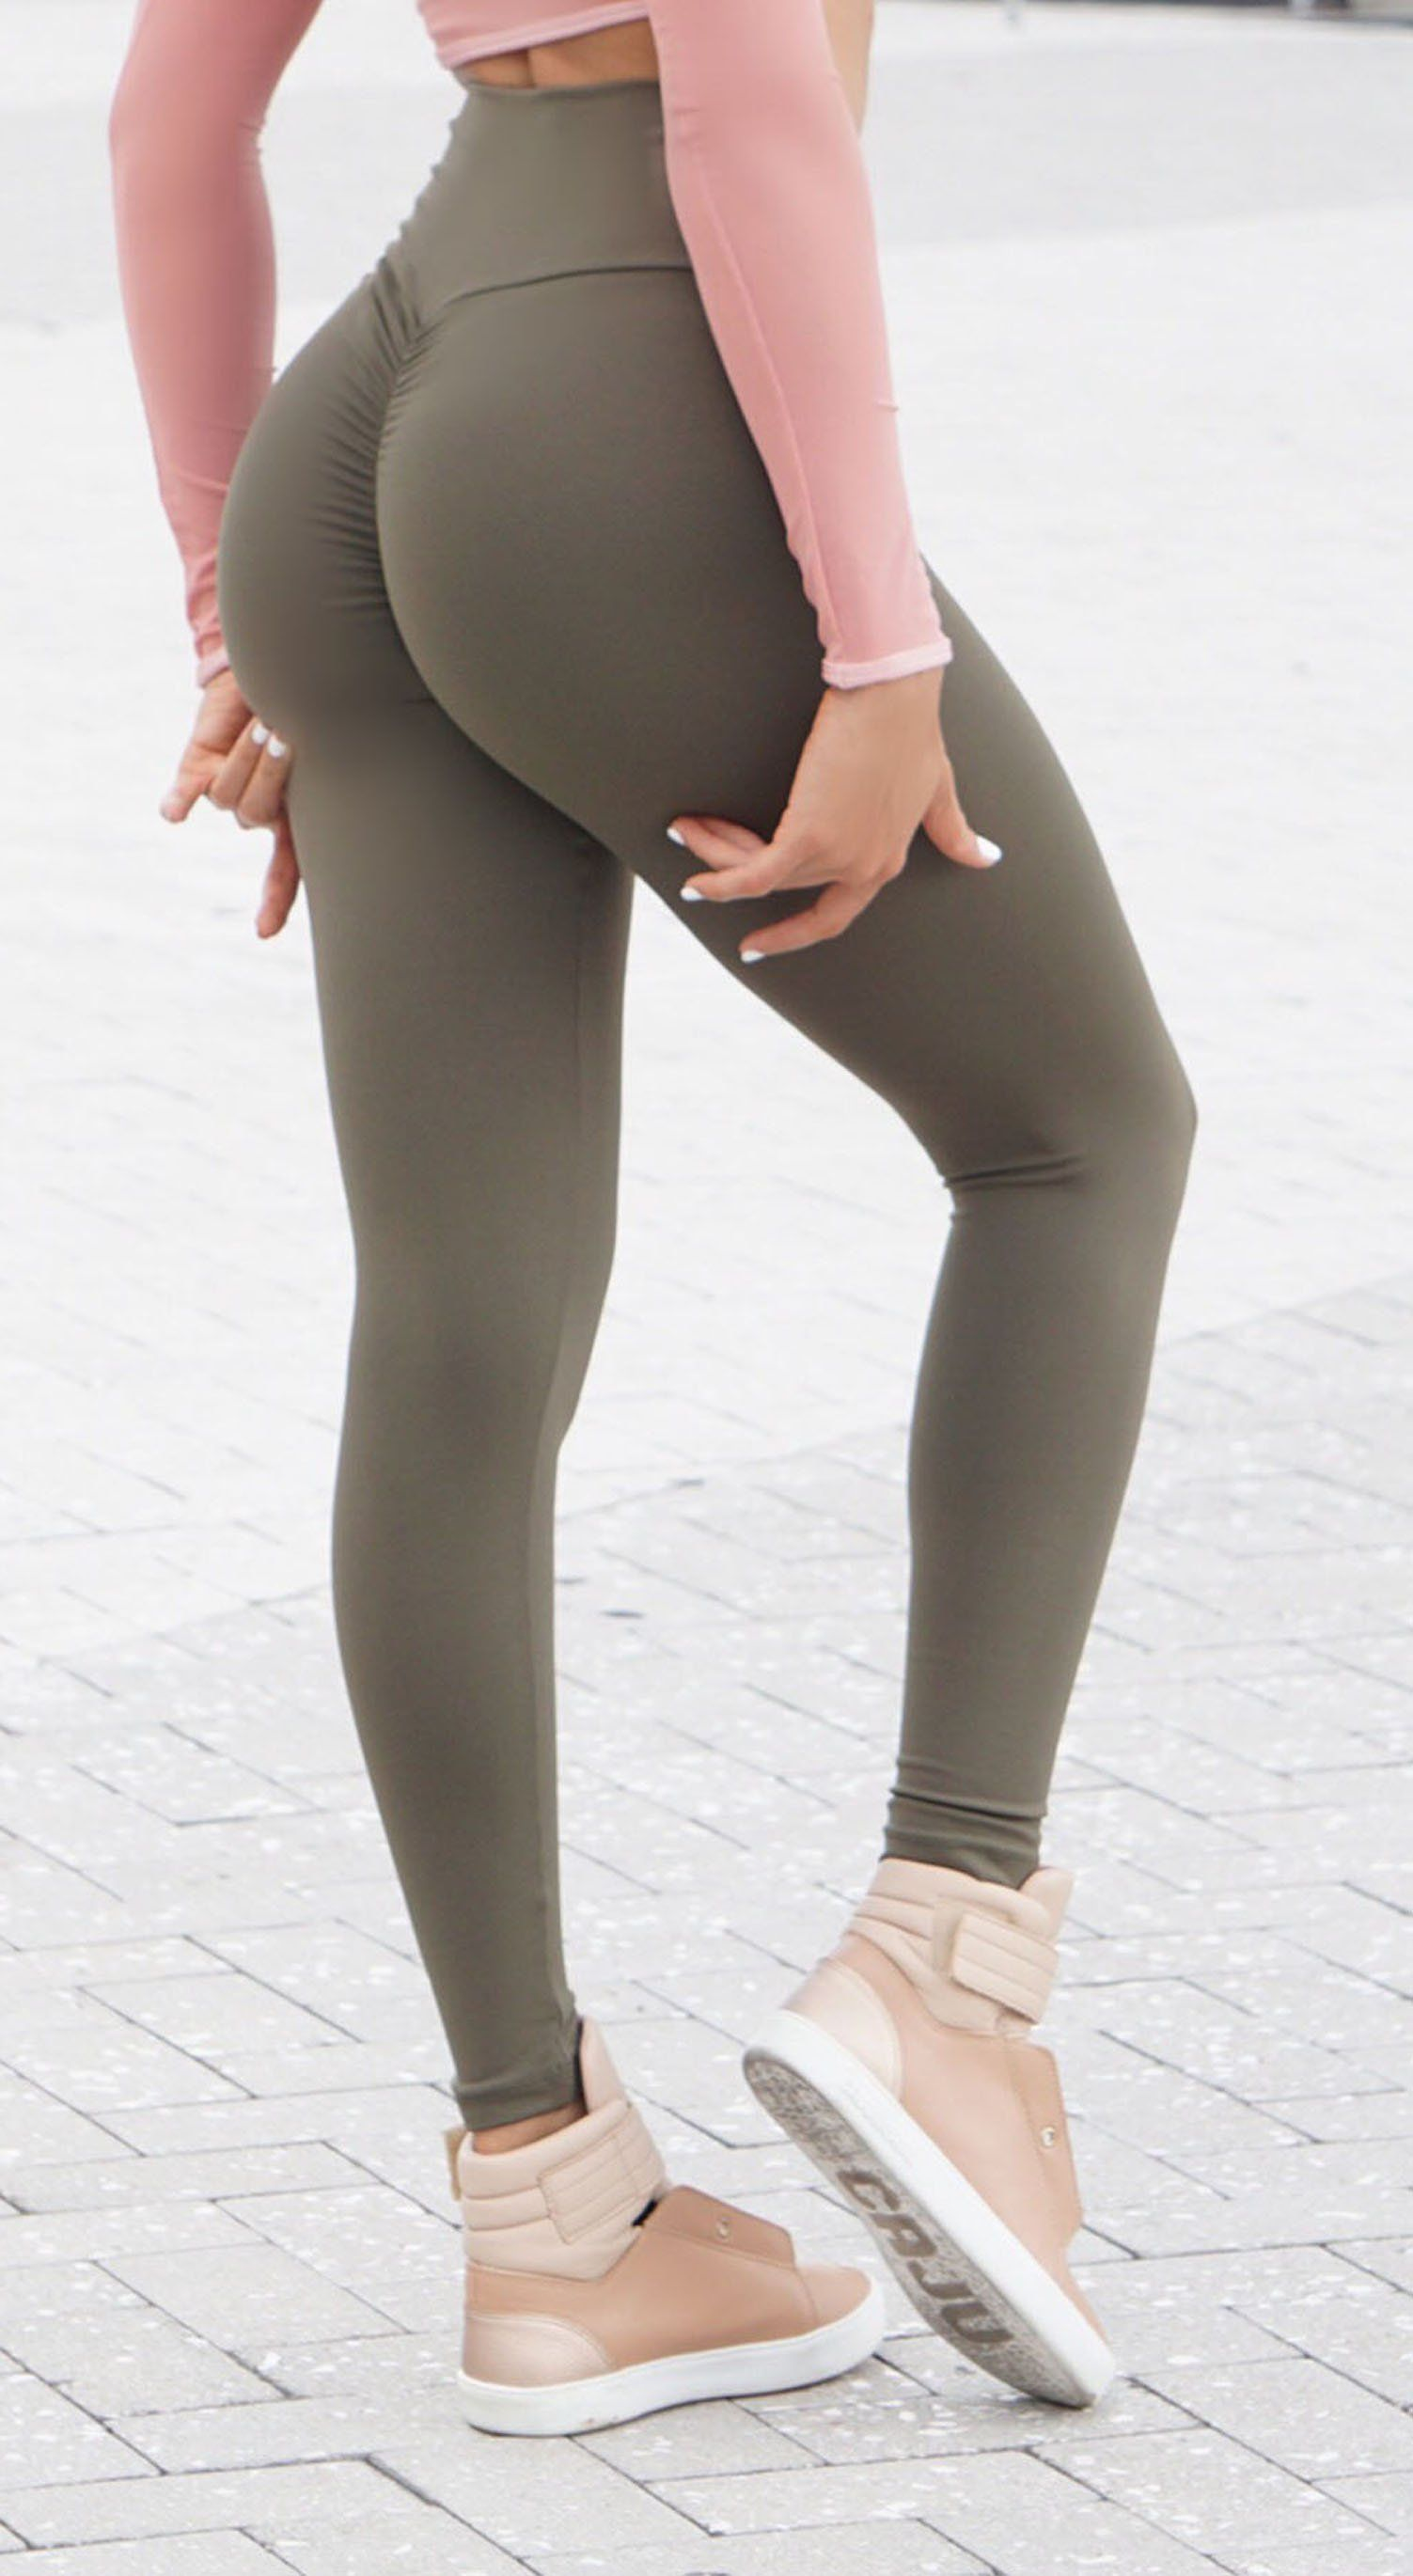 Brazilian Workout Legging - High Waist Scrunch Booty Cut V Army Green